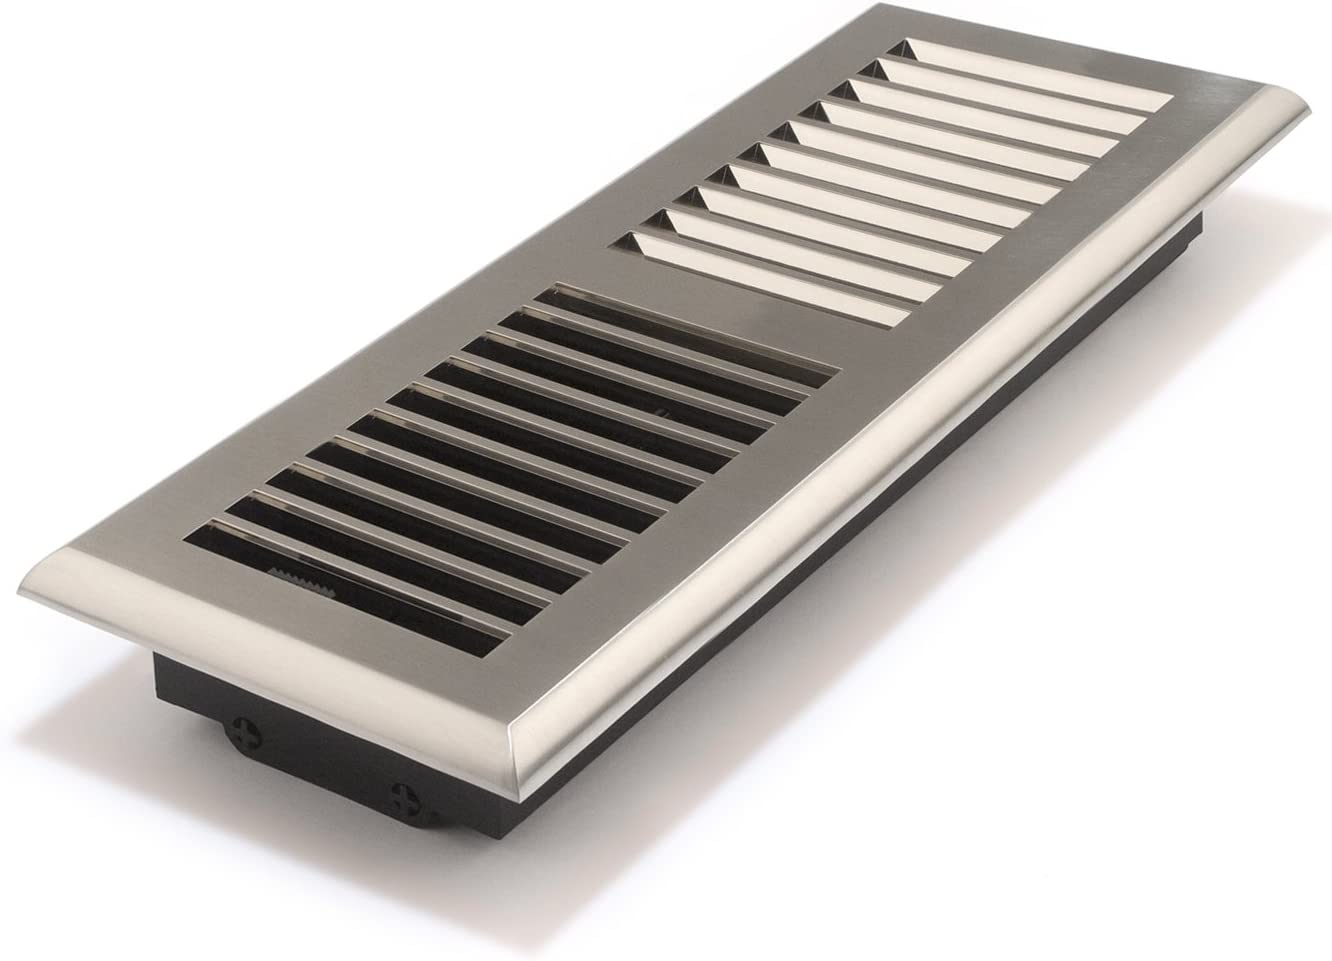 Accord APFRSNL412 Plastic Floor Register with Louvered Design, 4-Inch x 12-Inch(Duct Opening Measurements), Satin Nickel Finish